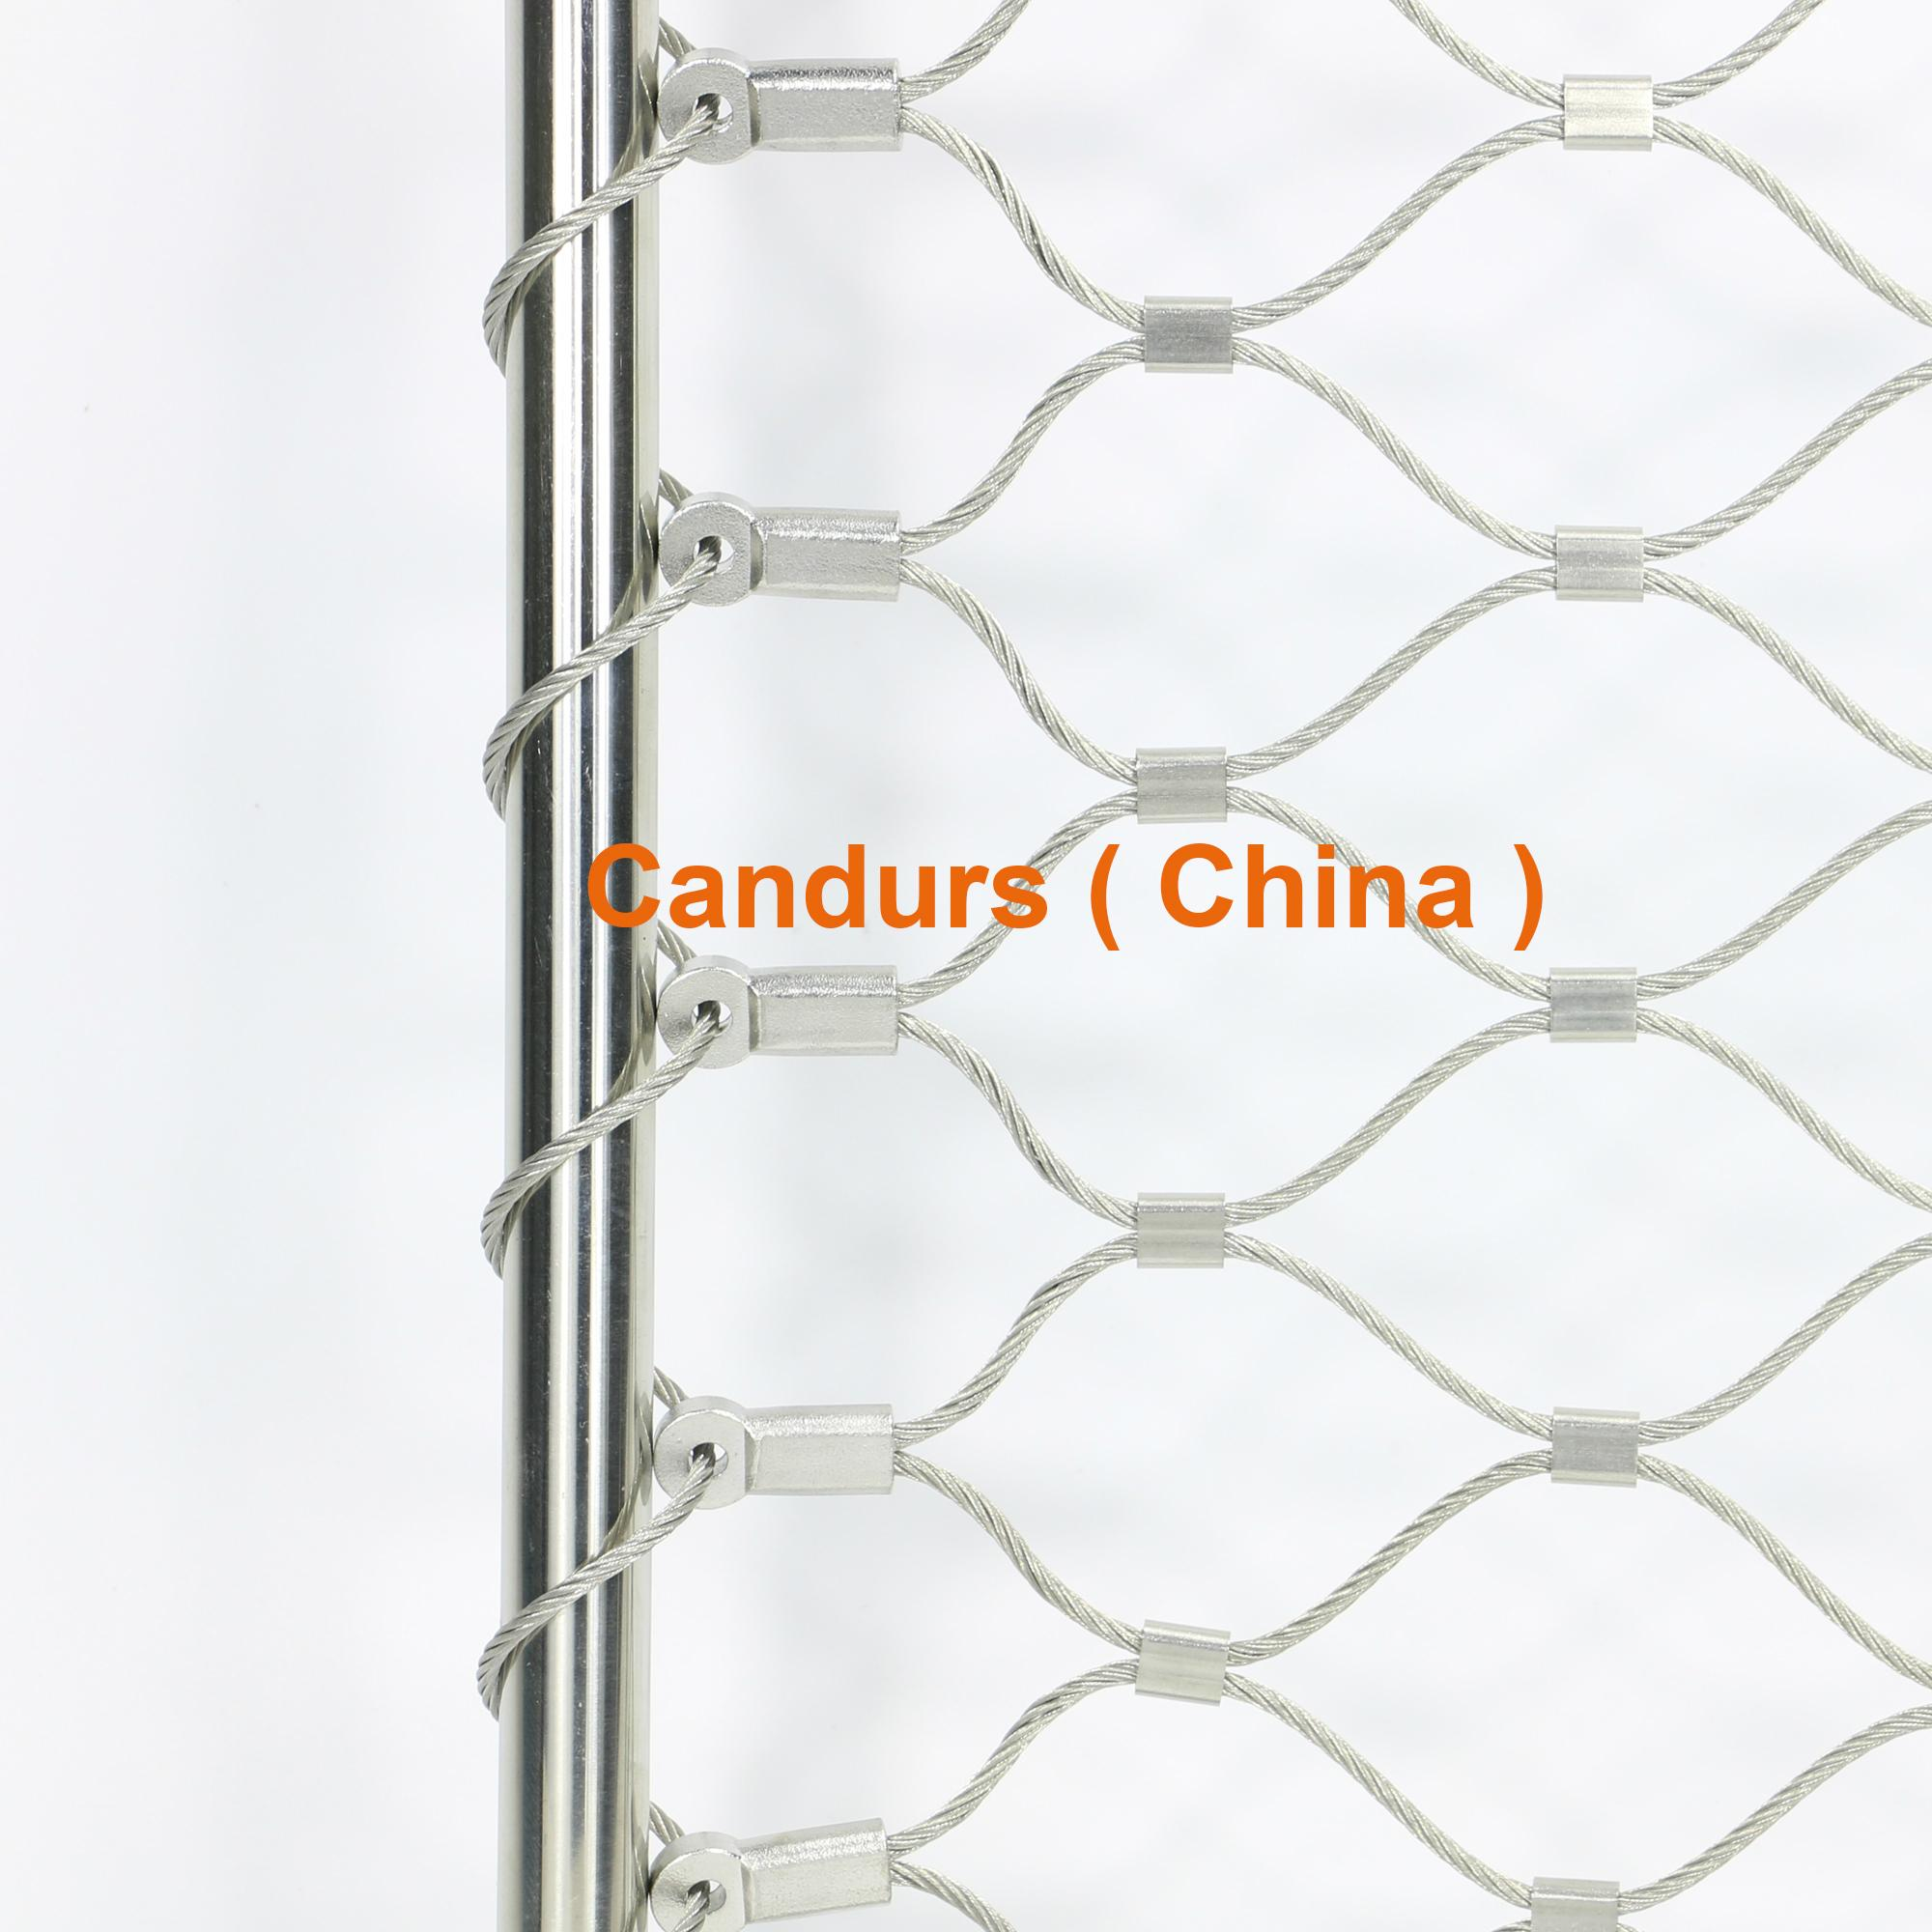 Flexible Stainless Steel Cable Wire Net - DecorRope - Candurs (China ...